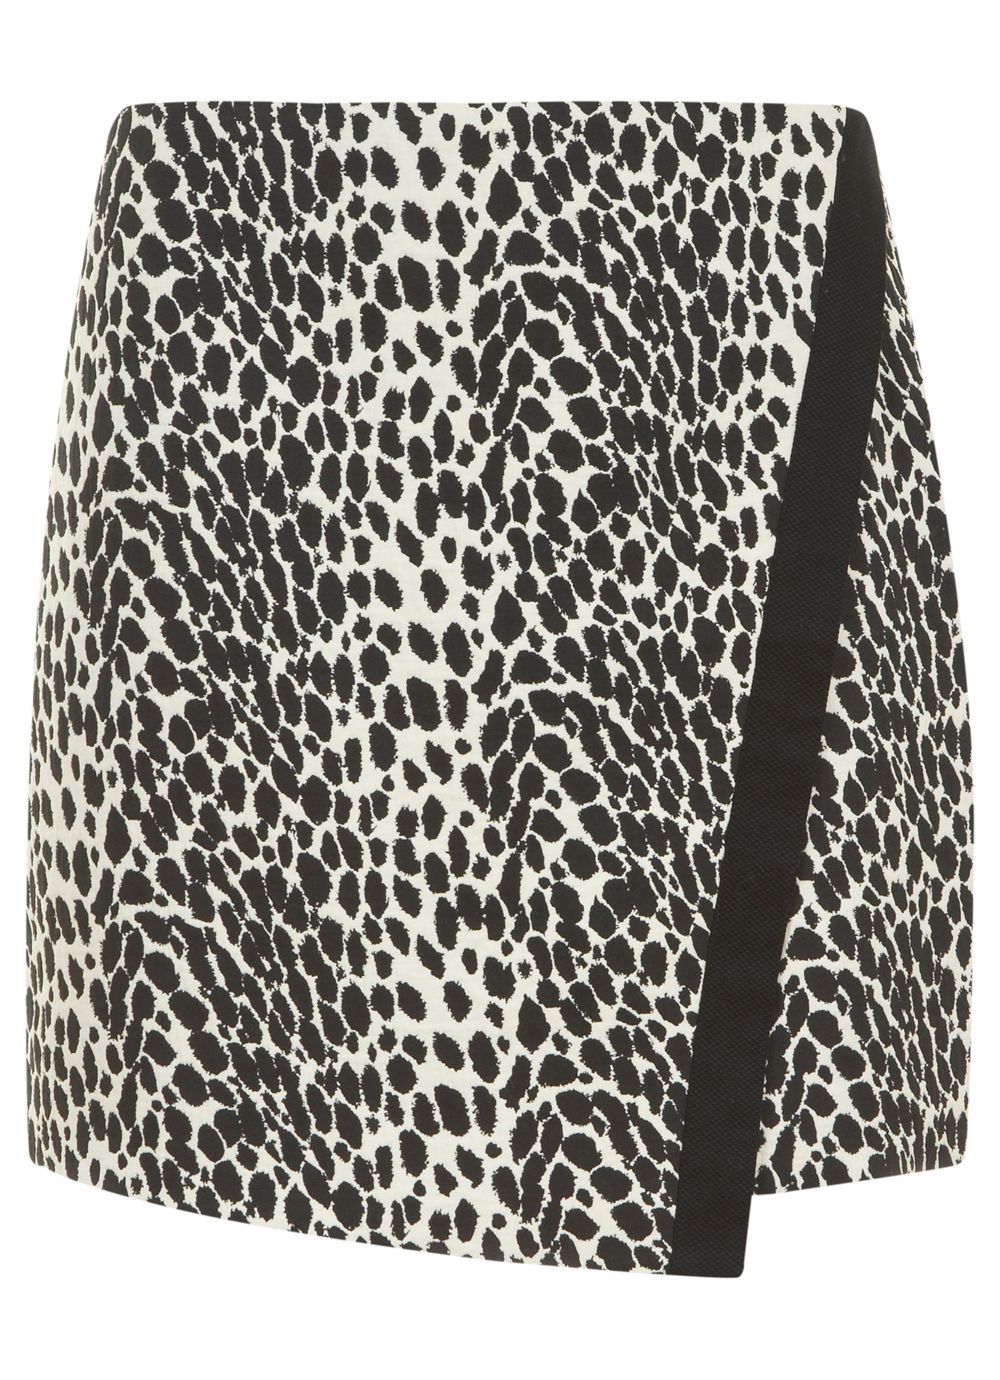 Black & cream leopard print skirt